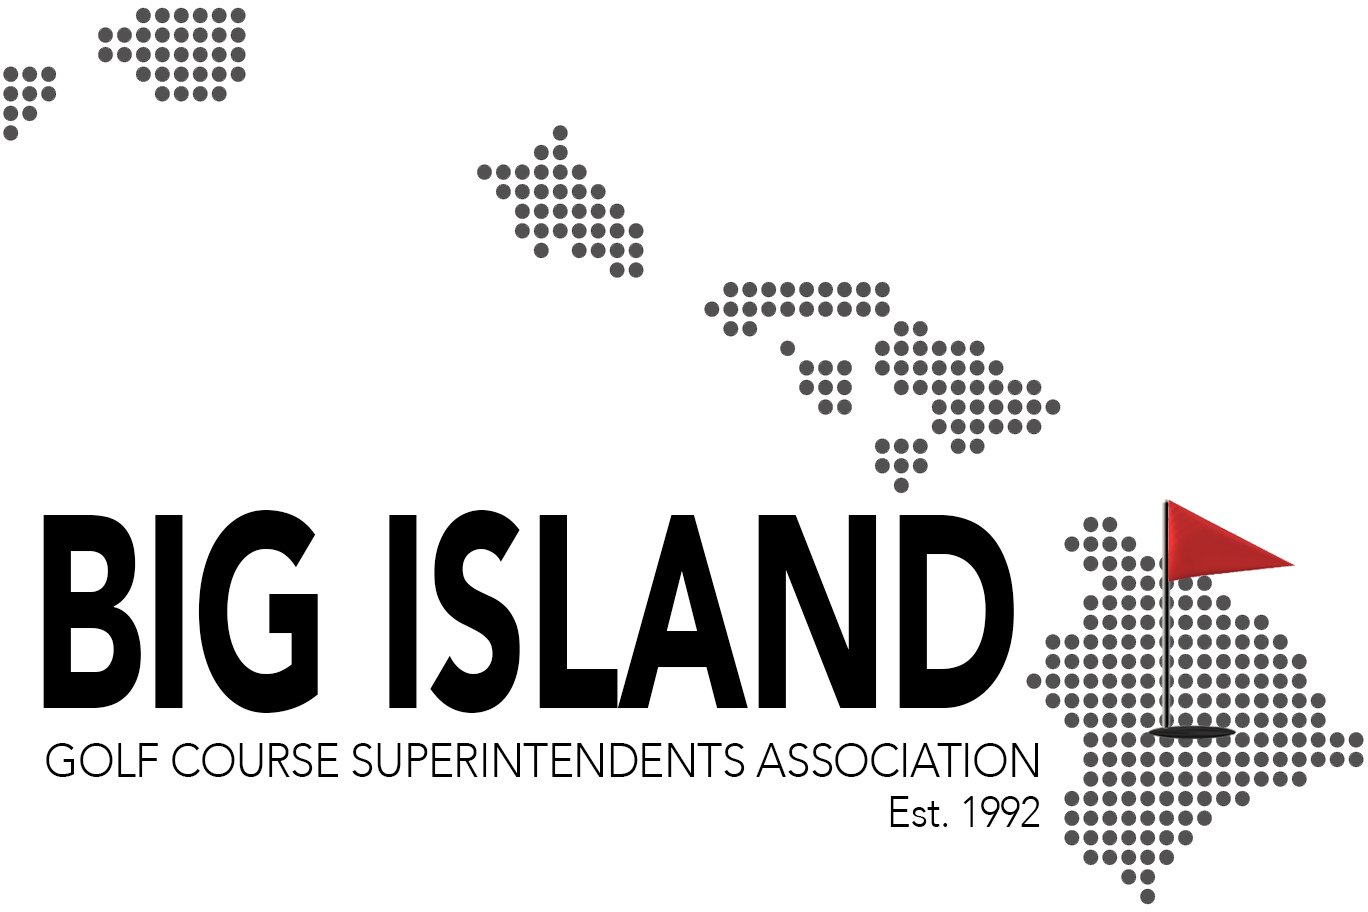 Big Island Golf Course Superintendents Association